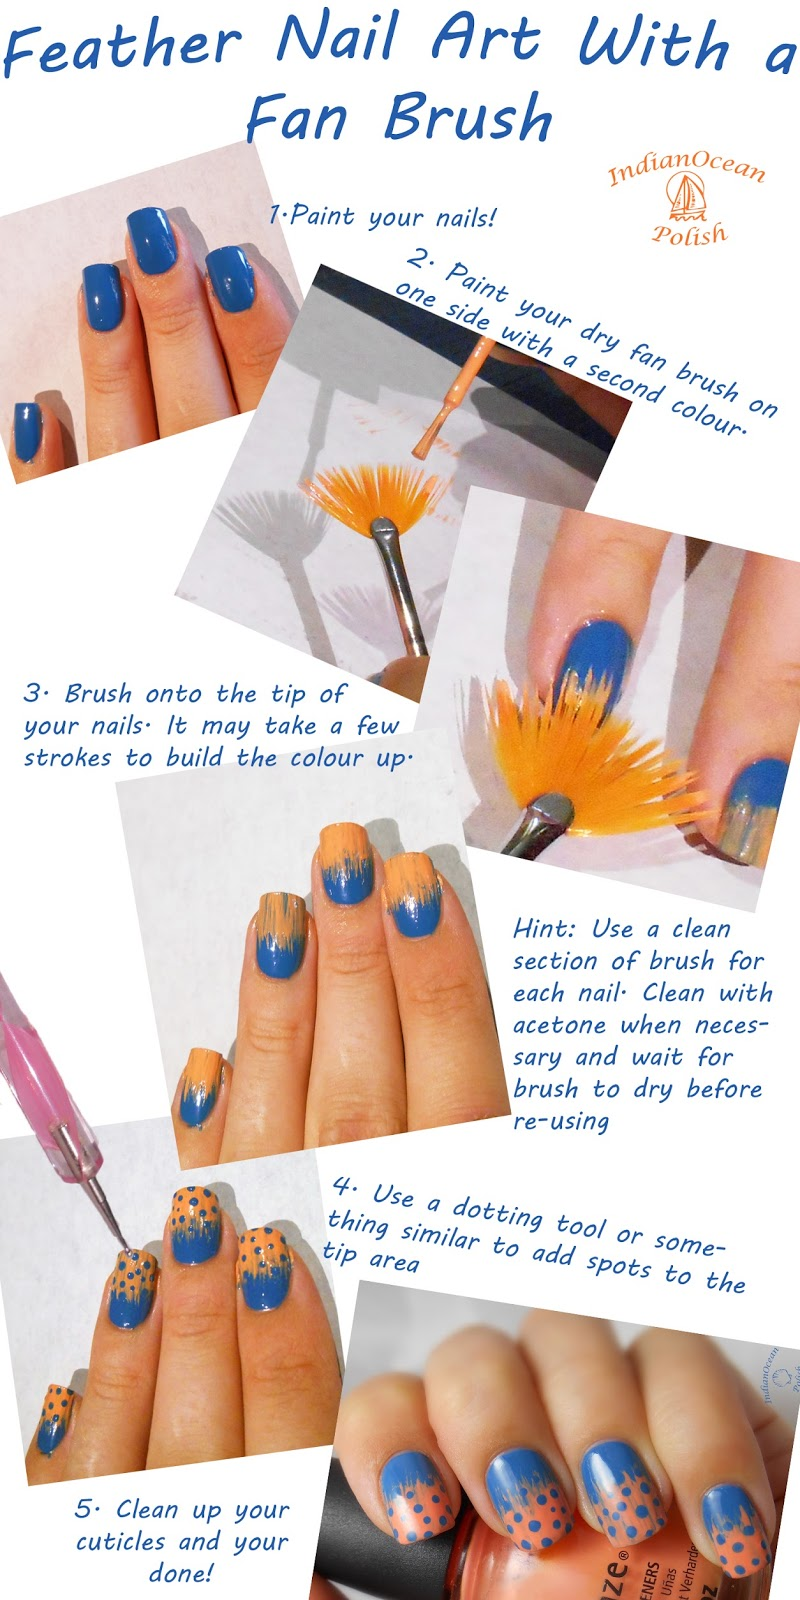 Indian ocean polish spotted feather nail art with a fan brush thanks very much for reading chanfie xox prinsesfo Image collections